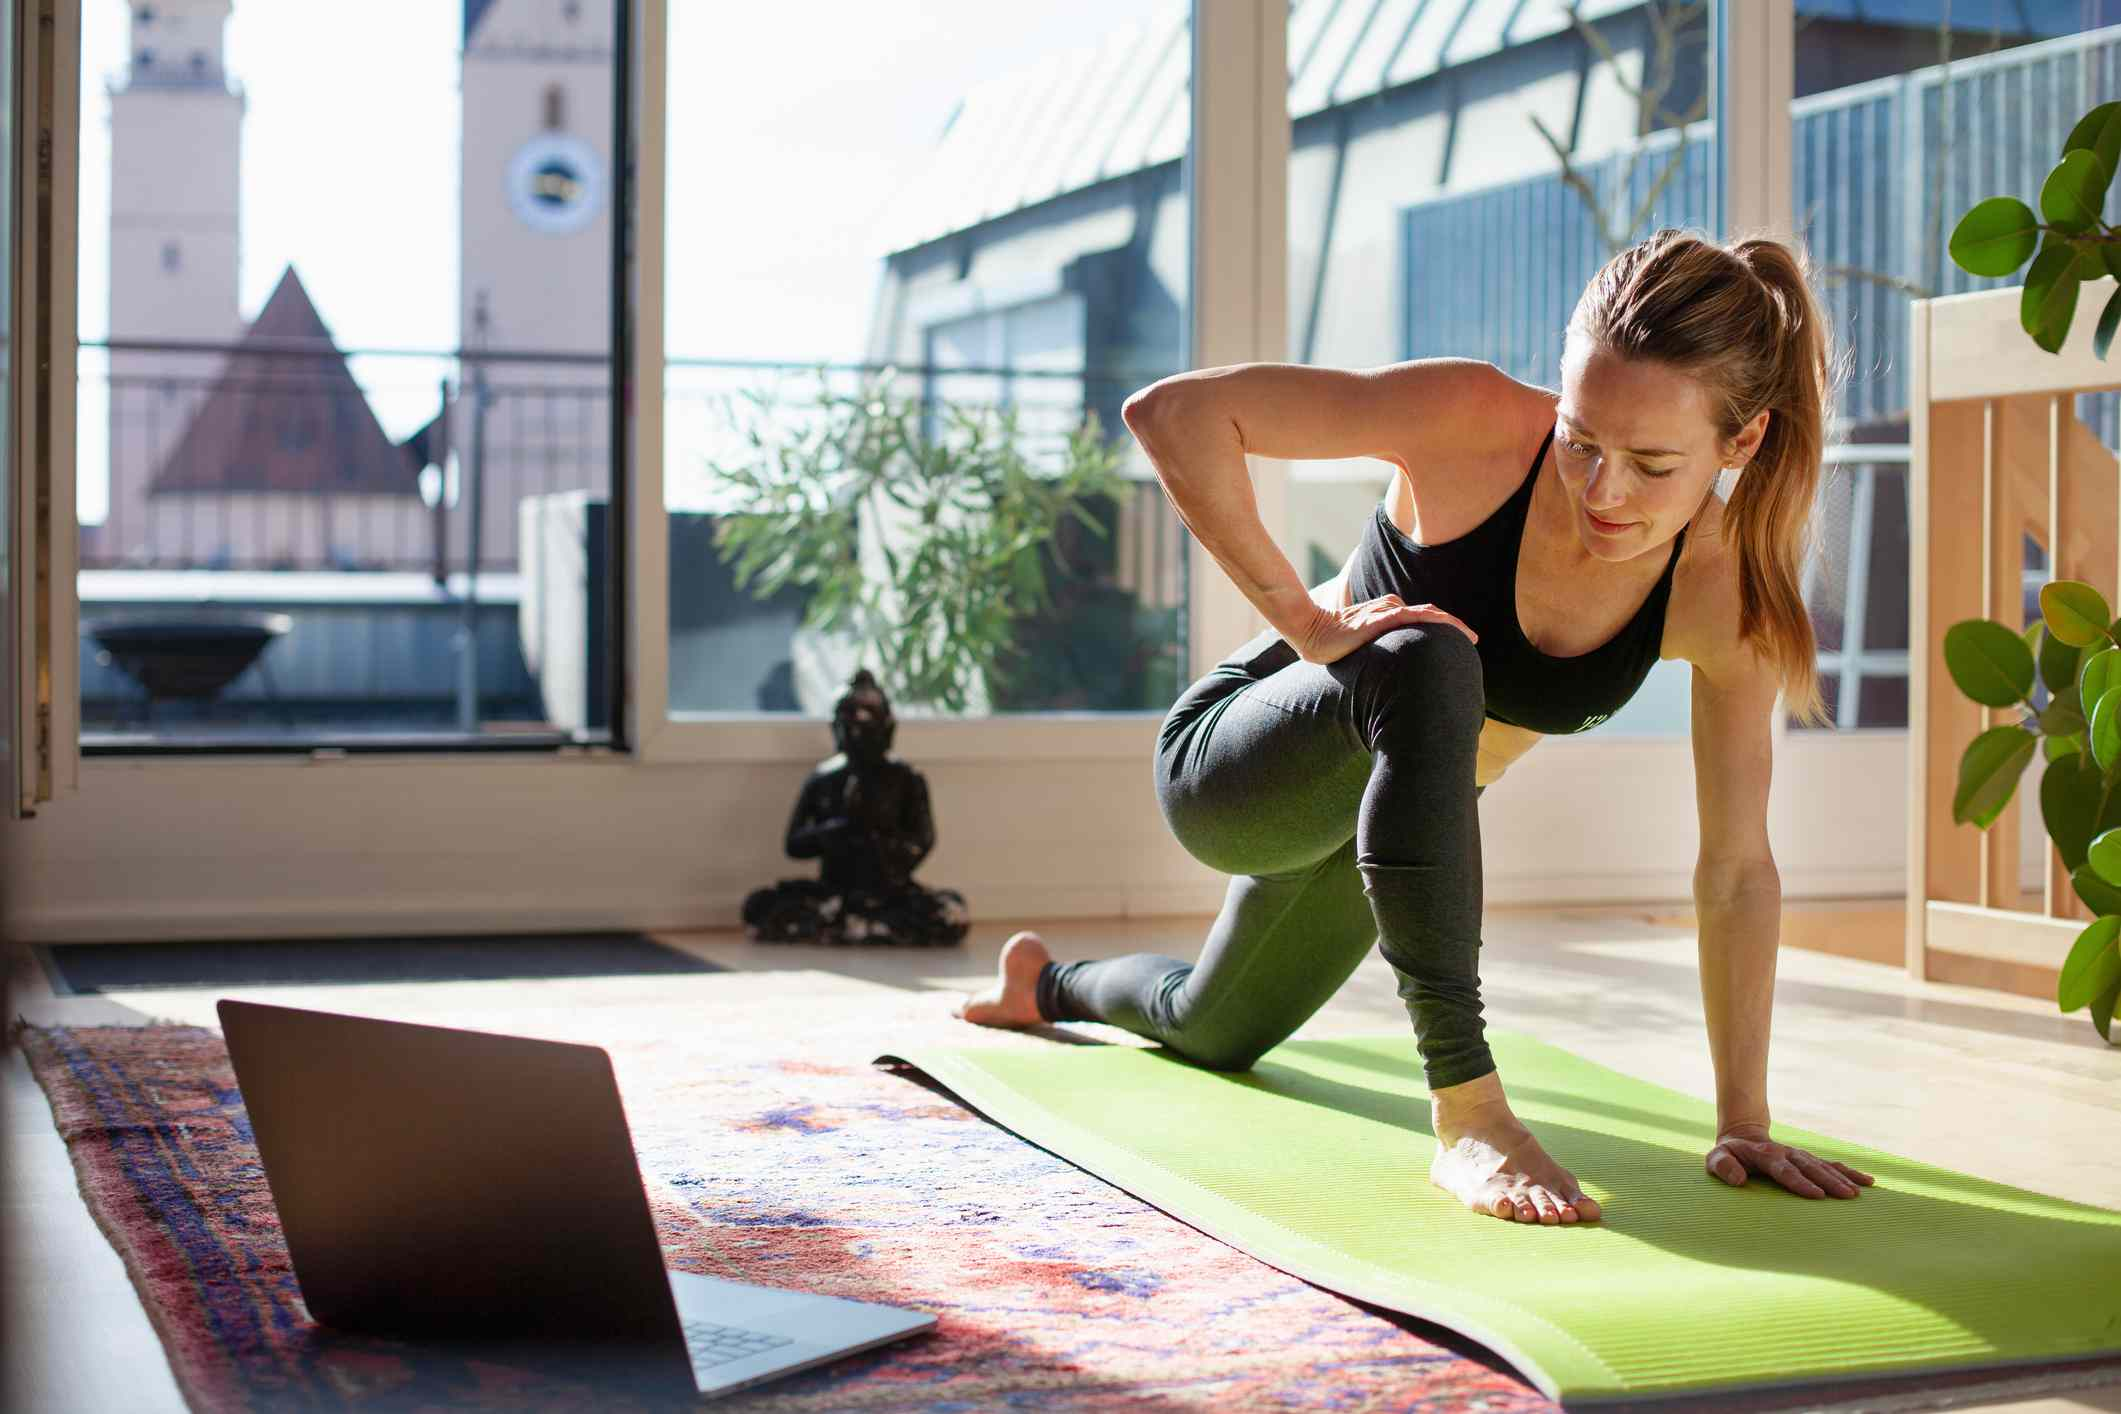 Young woman in athletic clothing doing yoga in her apartment